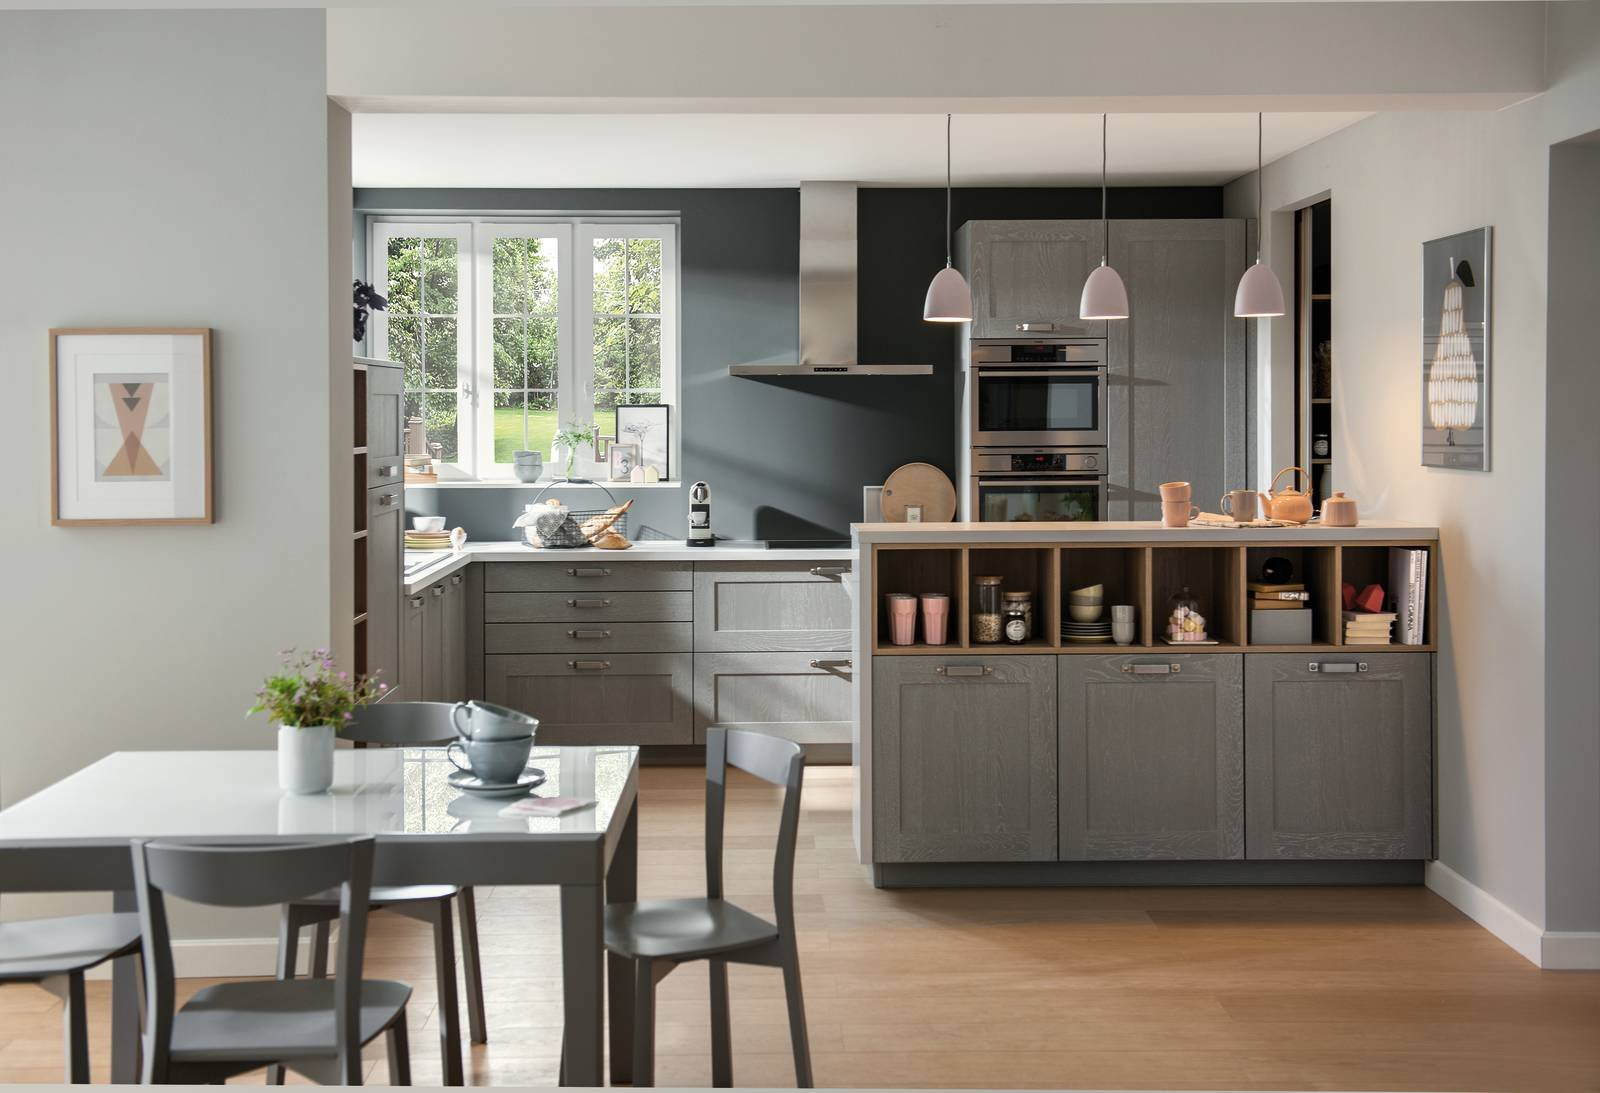 Stunning La Finestra In Cucina Pictures - Ideas & Design 2017 ...